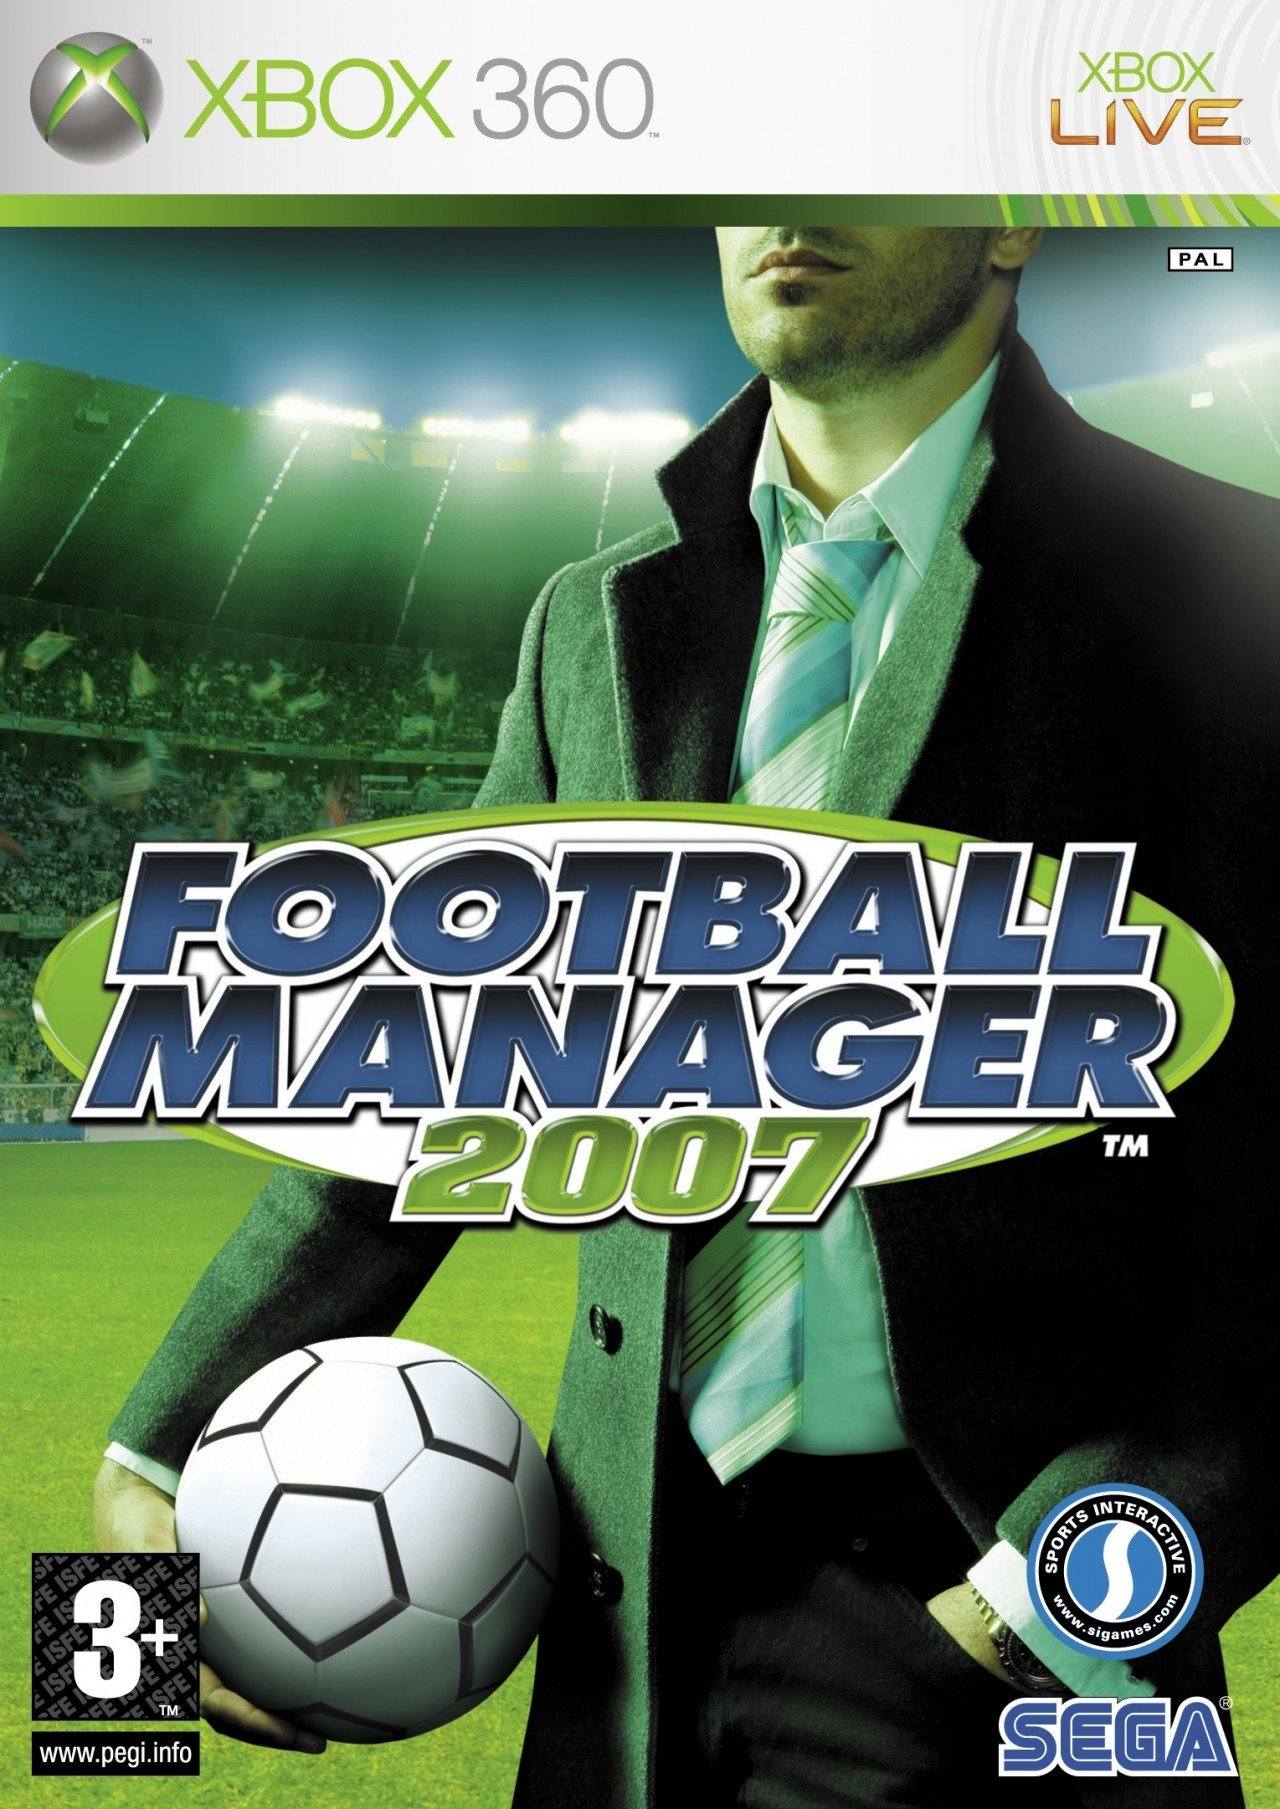 Football Manager 2007 Video Game 2006 Imdb